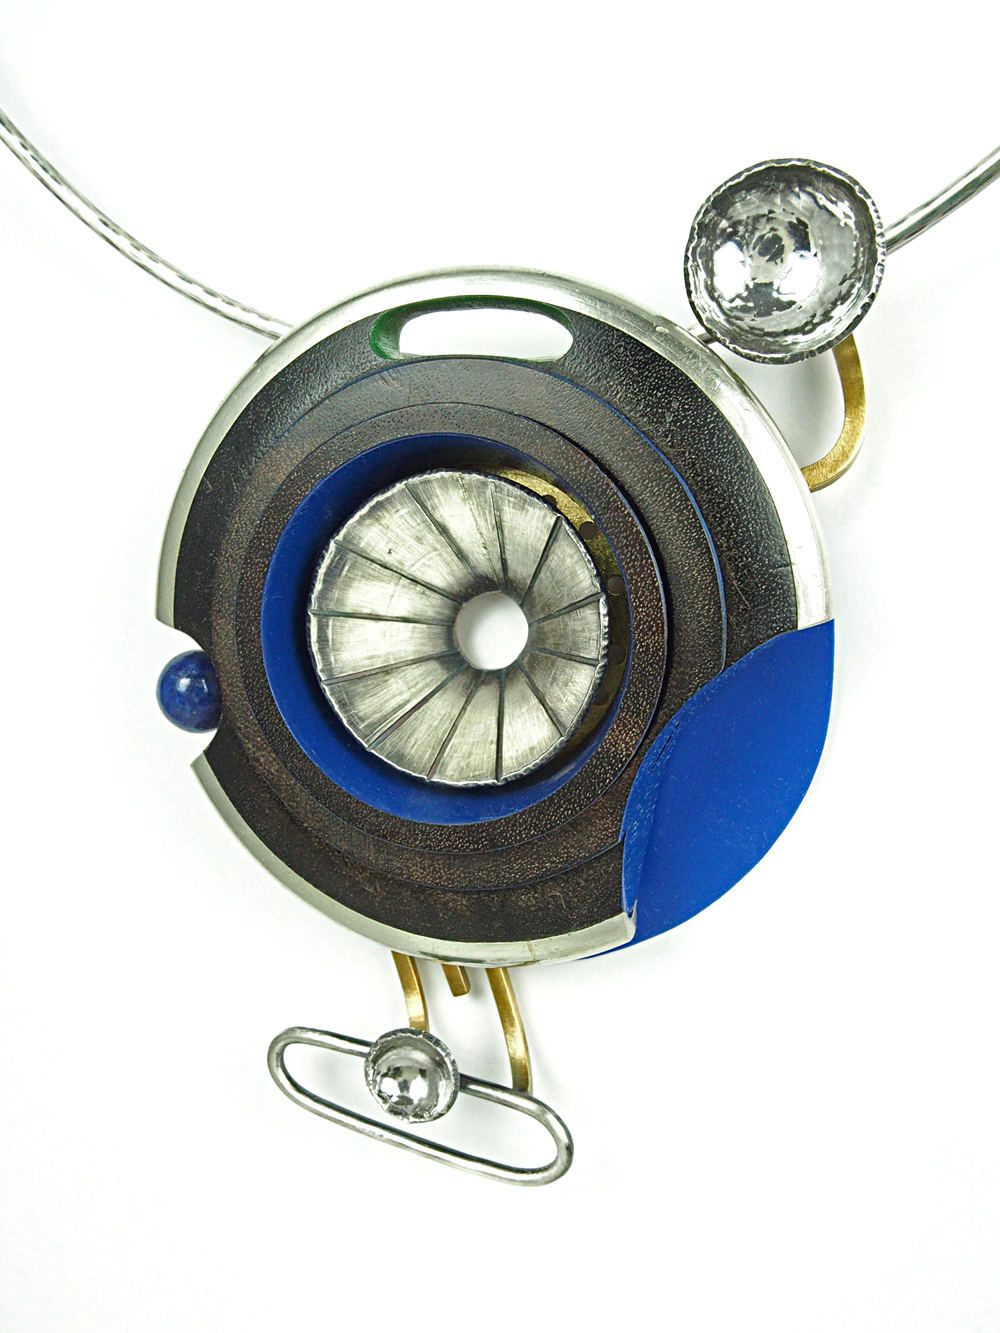 "Siren Necklace, 2015, Sterling silver, brass, stainless steel, nickle silver, vintage clarinet parts, celluloid, lapis lazuli, 23ky gold leaf, paint, 4.5 x 3.75 x 1"" pendant - 20"" chocker"